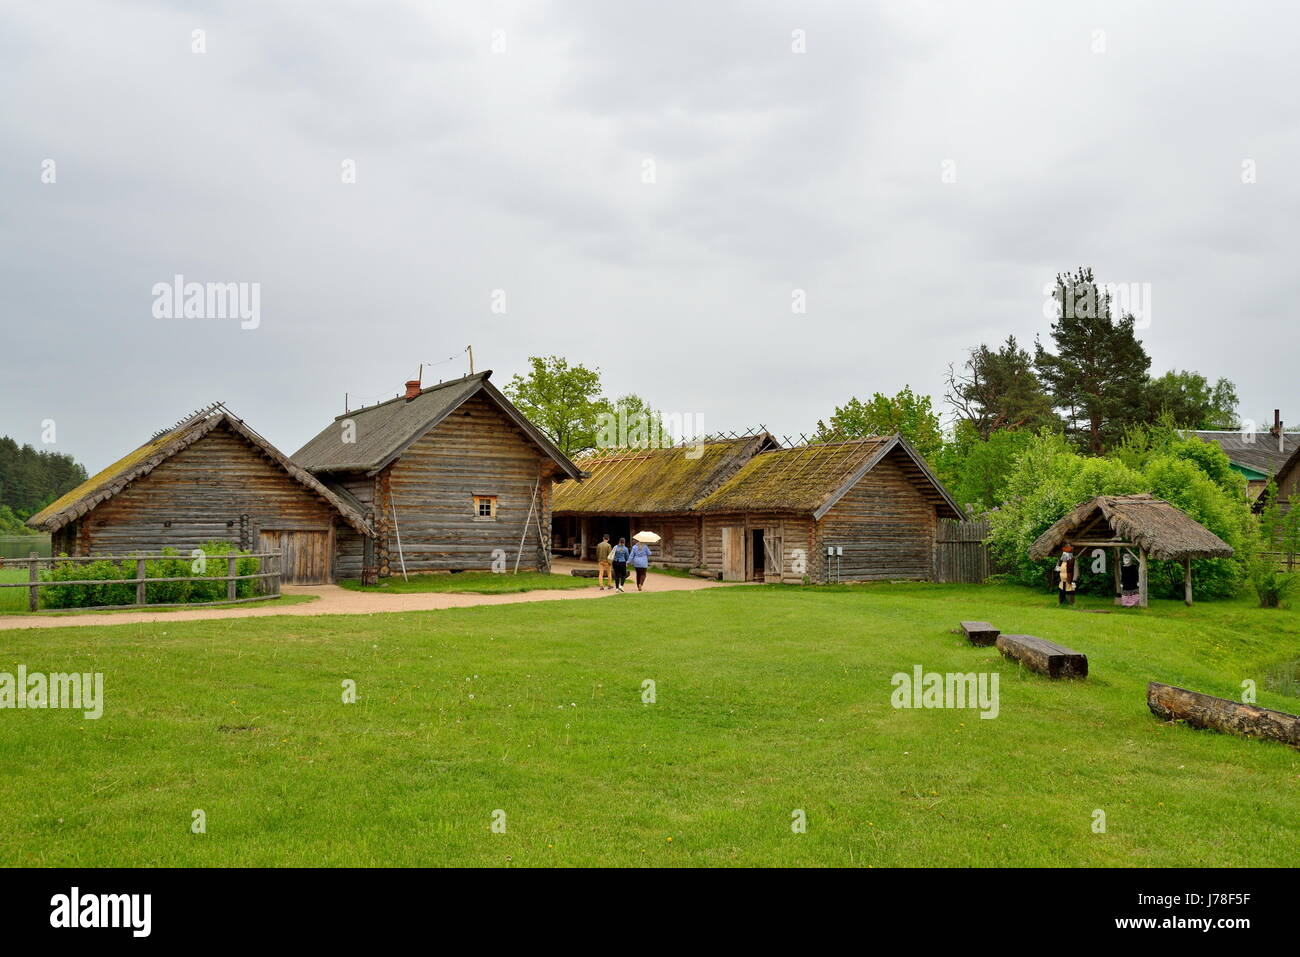 Tourists visiting the old log house in the Pushkin Mikhailovskoe summer cloudy day - Stock Image